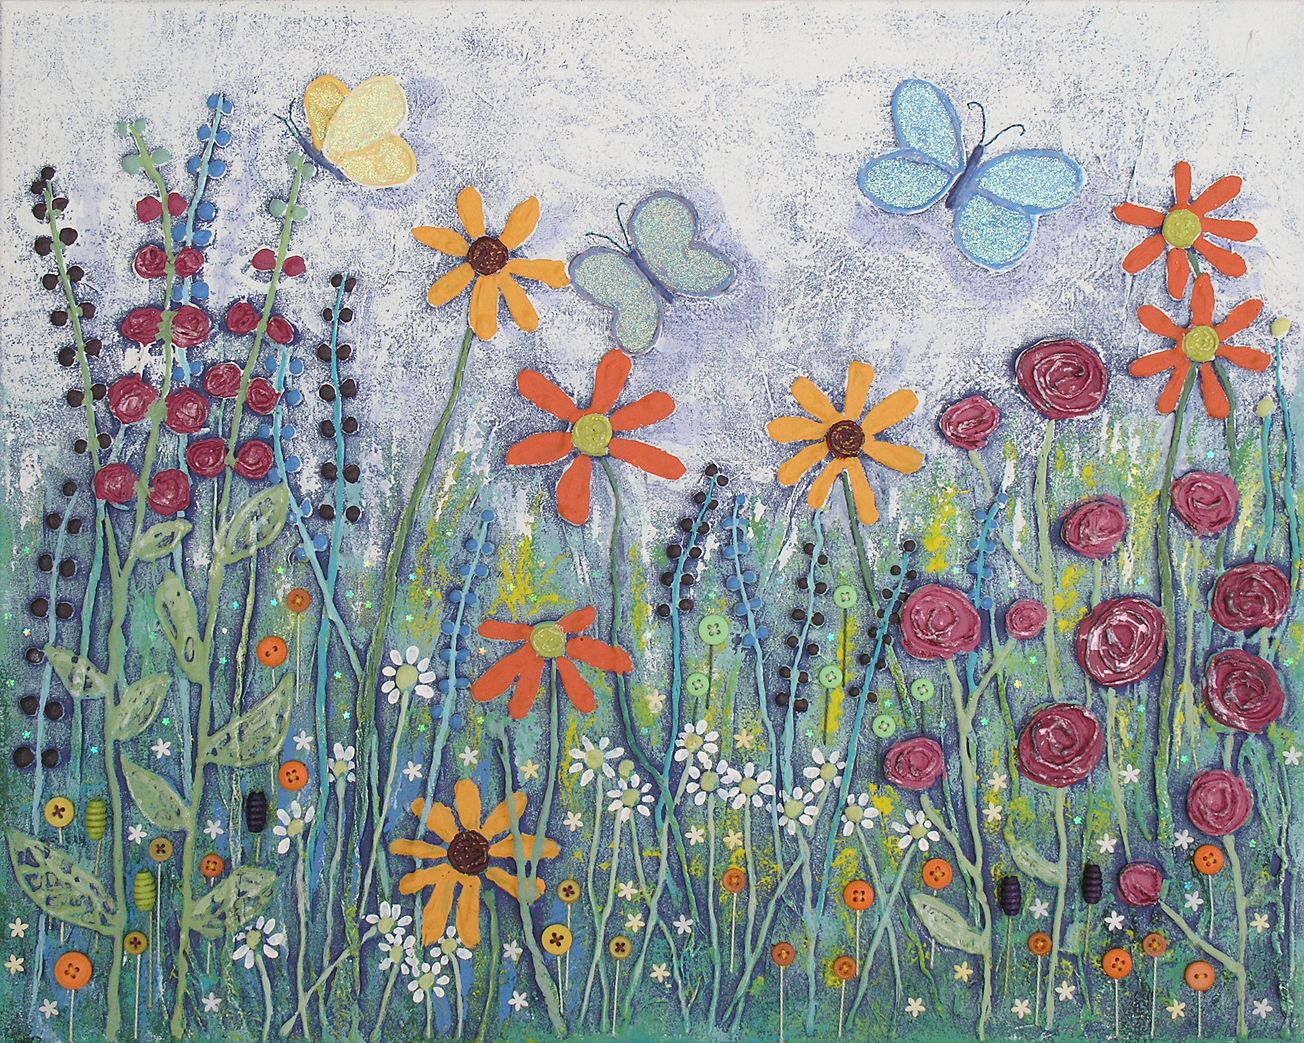 Butterfly Garden - mixed media on a 20 x 16 inch canvas (original sold)